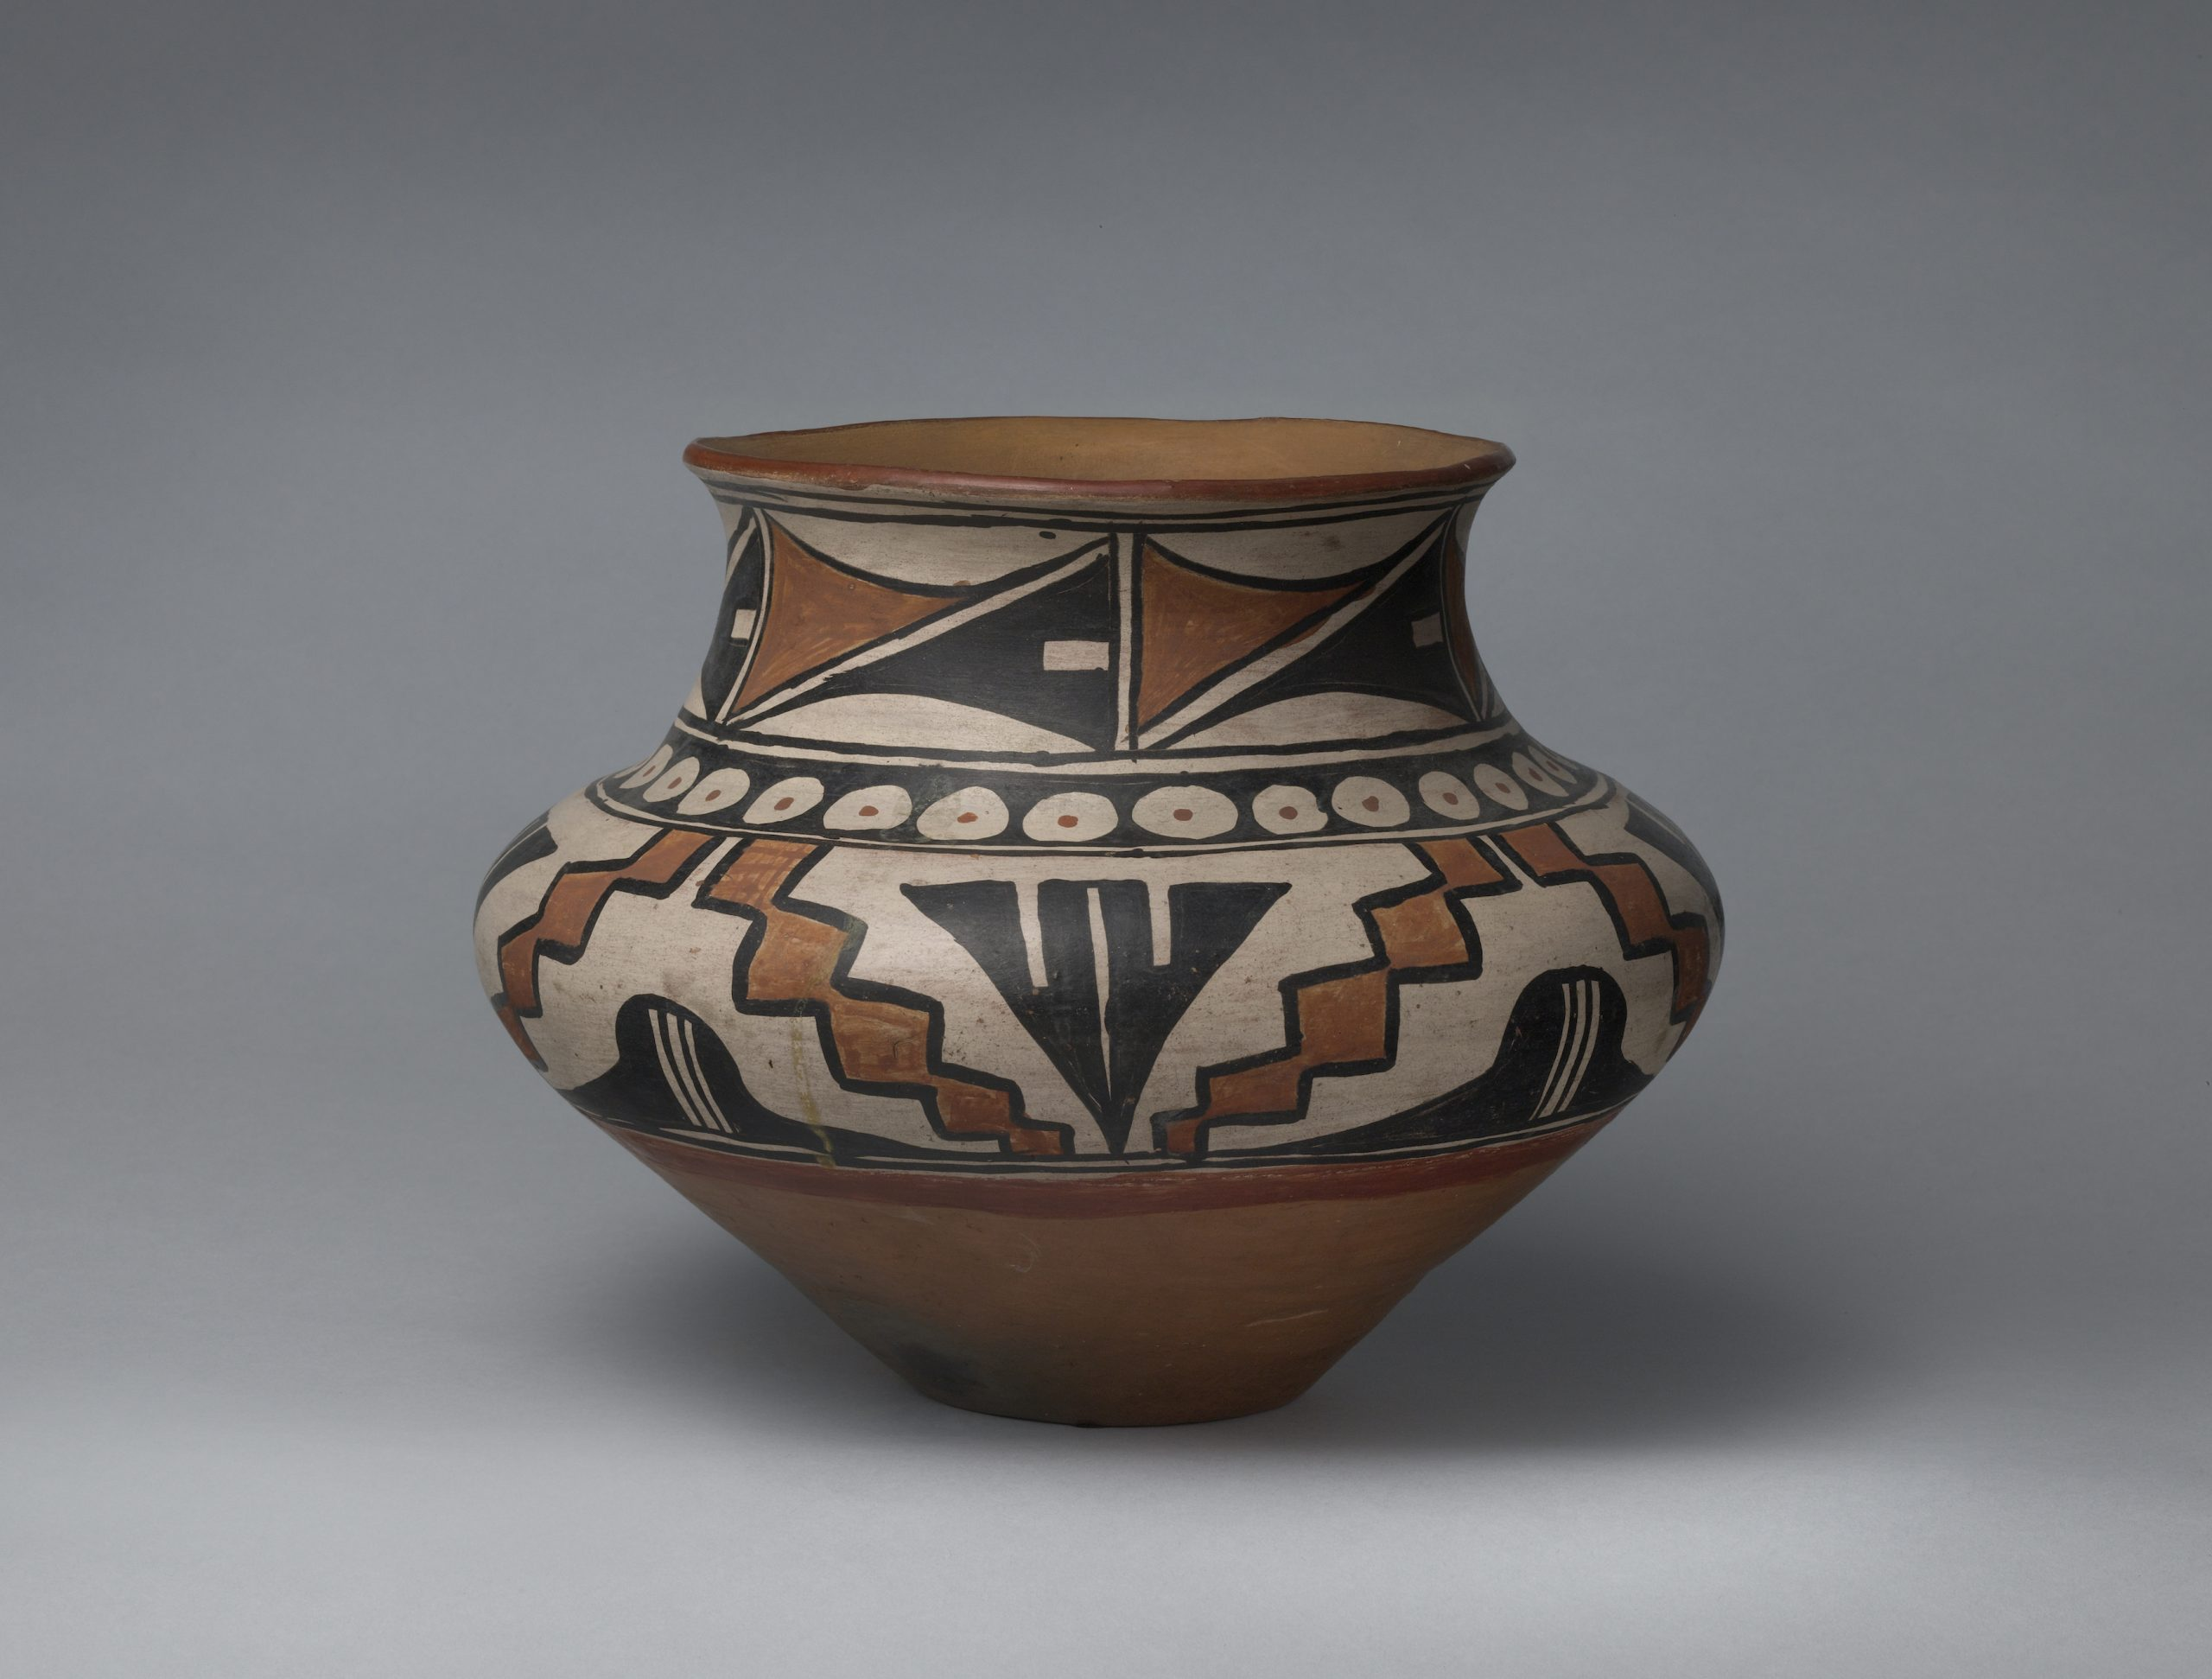 A San Ildefonso jar with three bands of black and brown geometric designs.